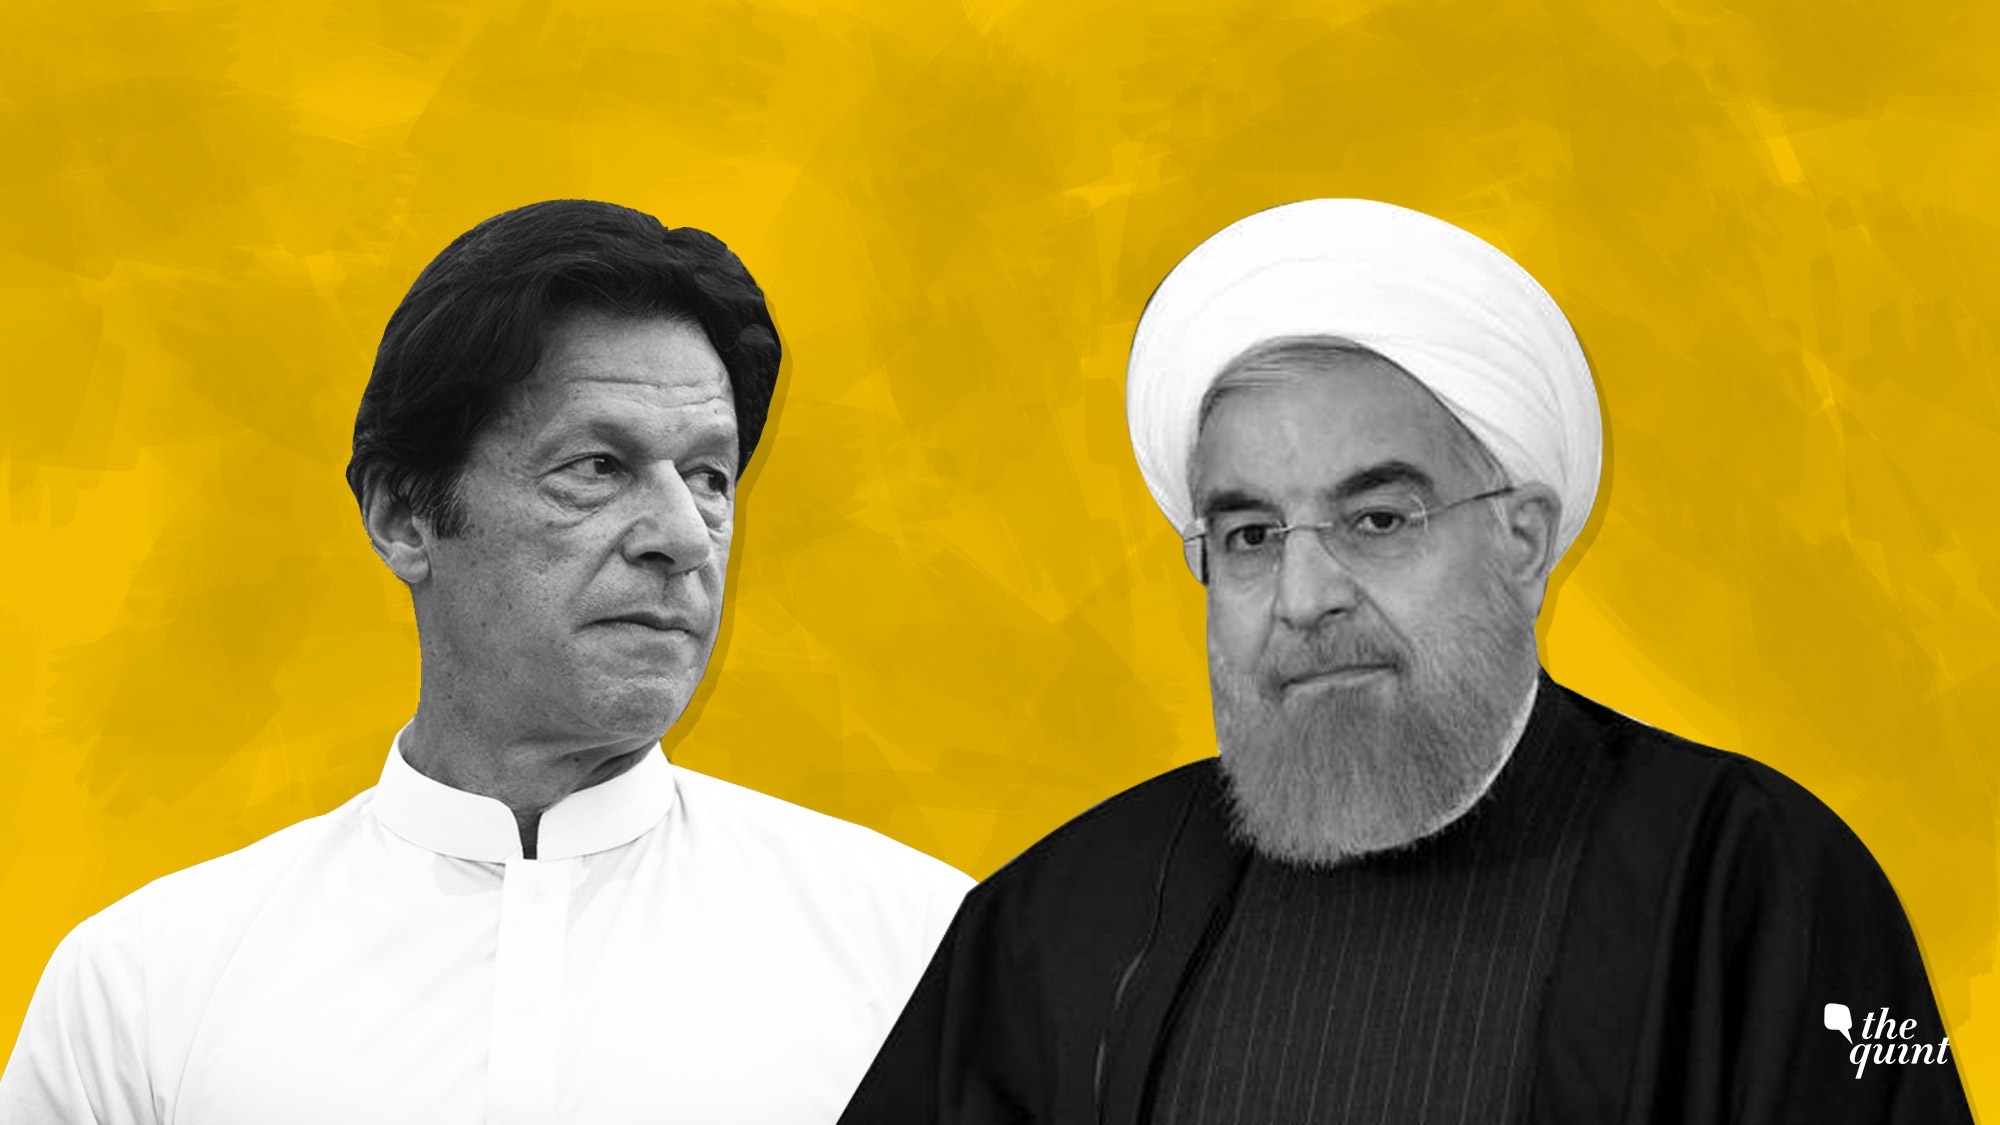 Imran & Rouhani: Does Pak Really Want to Be Friends With Iran?